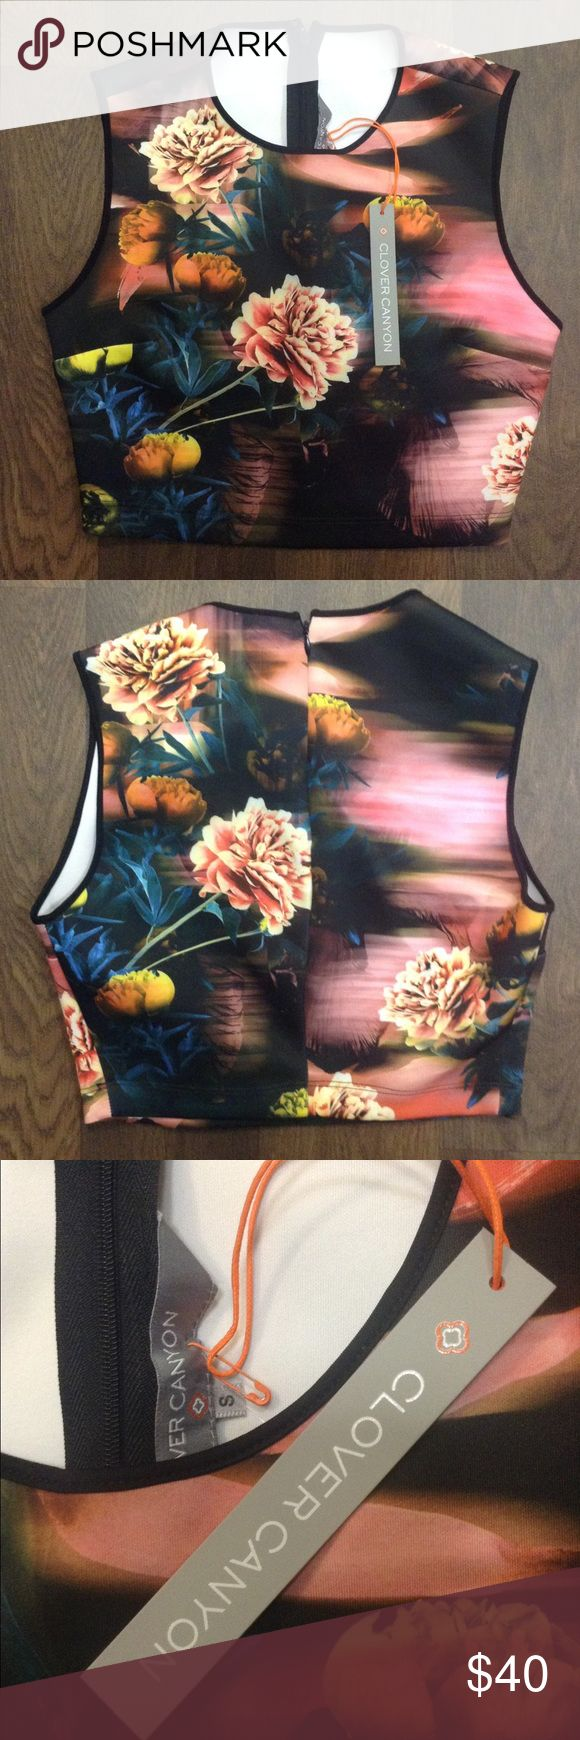 NWT Clover Canyon Neoprene Floral Crop Top NEW! With Tags. Cute Clover Canyon Peony Flower Neoprene Back Zip Up Crop Top. Size is a small. Comment if you have any questions. . Make me an offer! Clover Canyon Tops Crop Tops